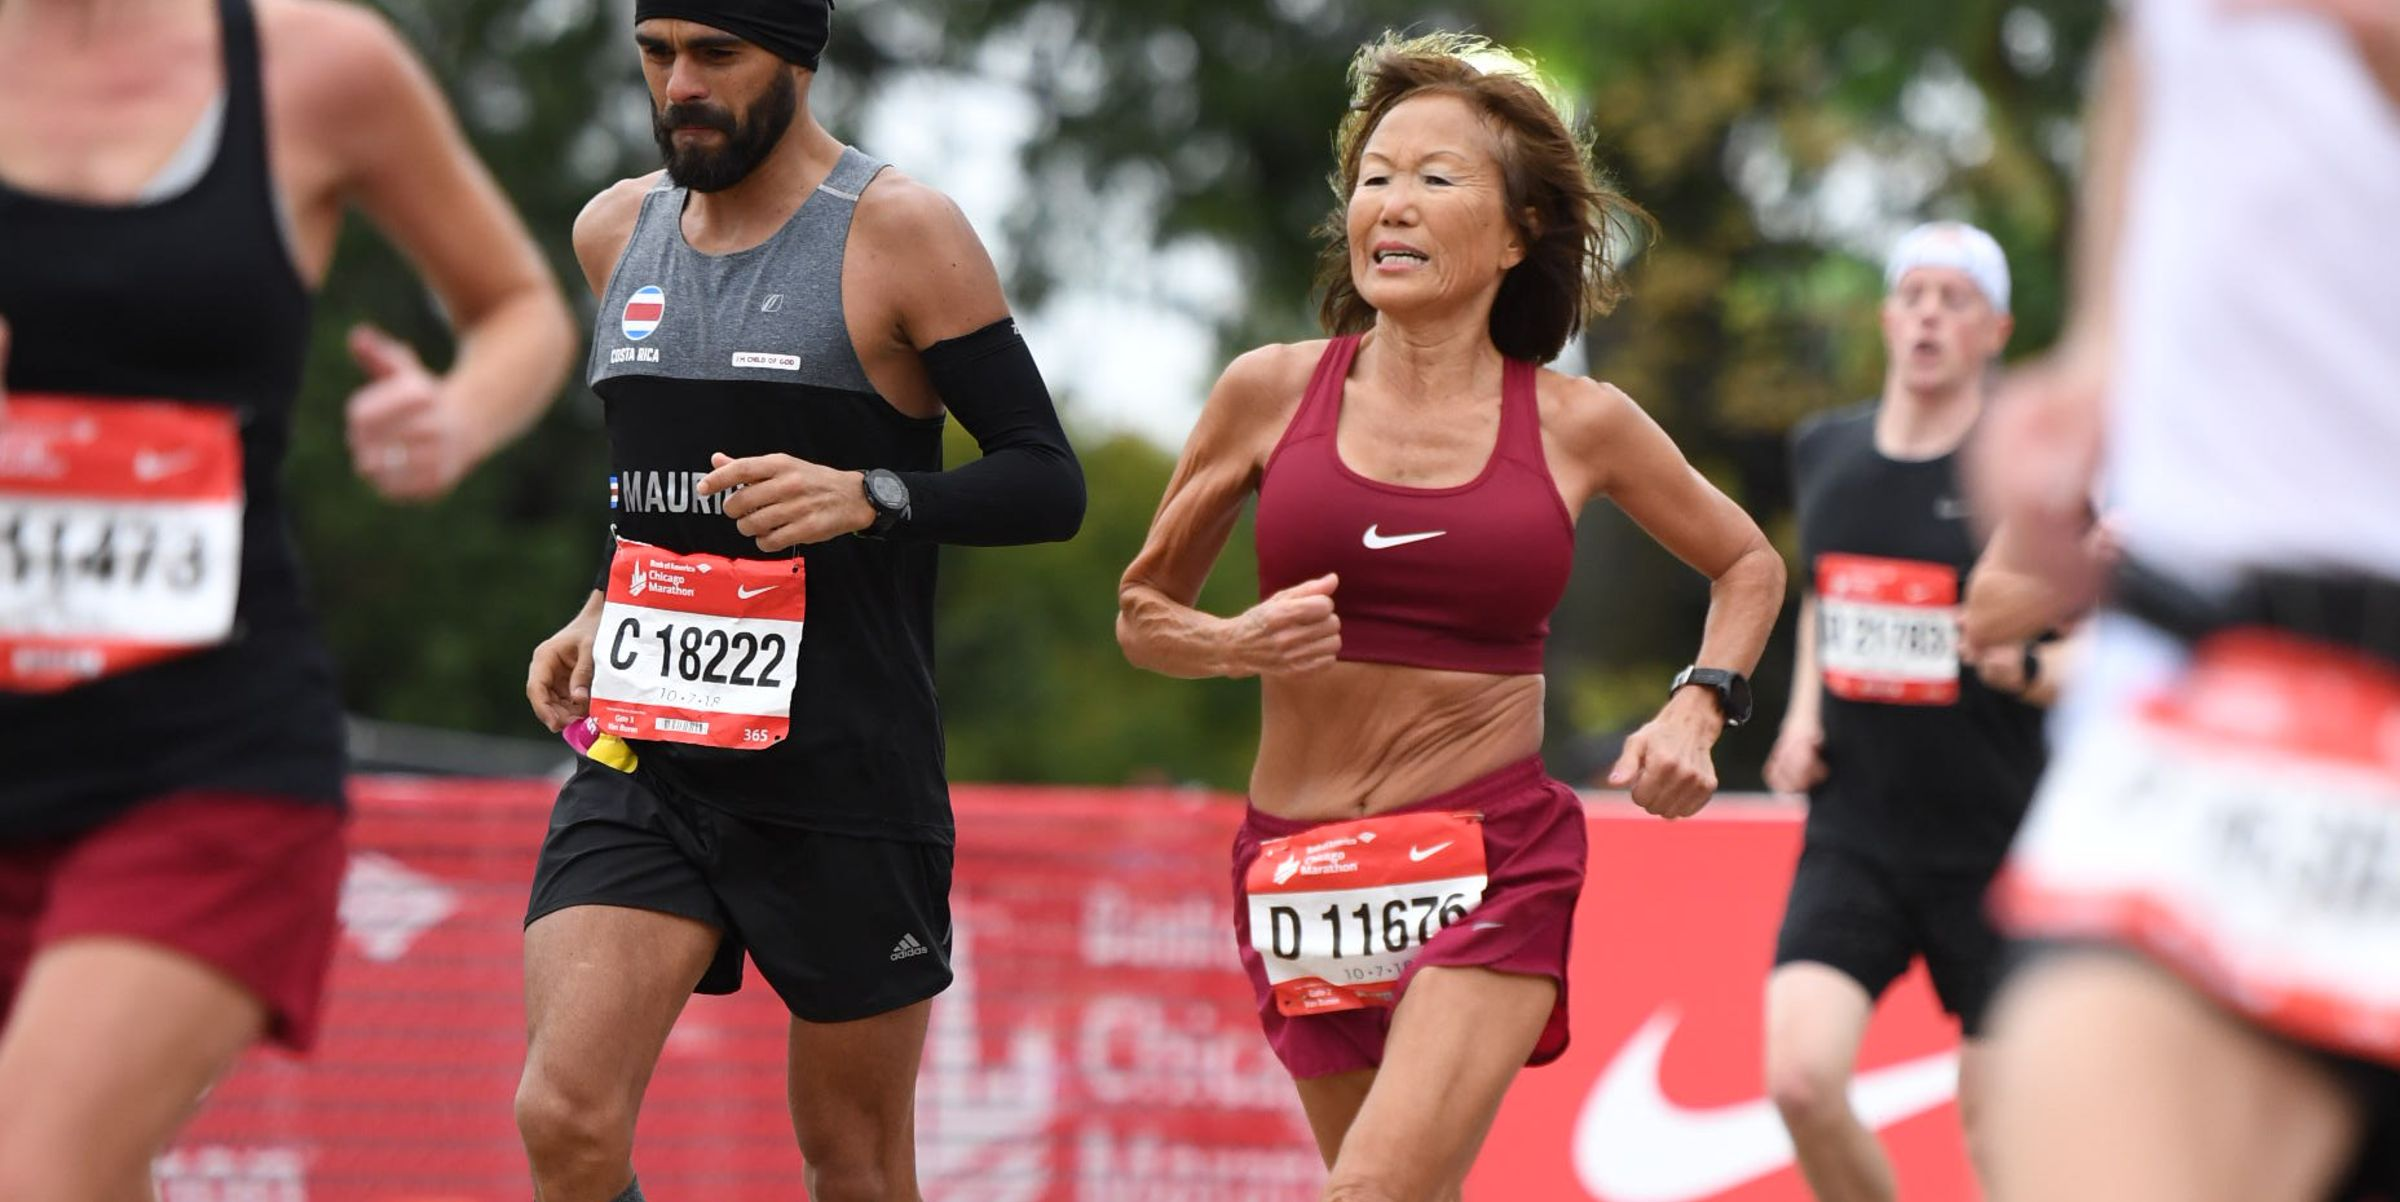 Jeannie Rice runs Chicago Marathon